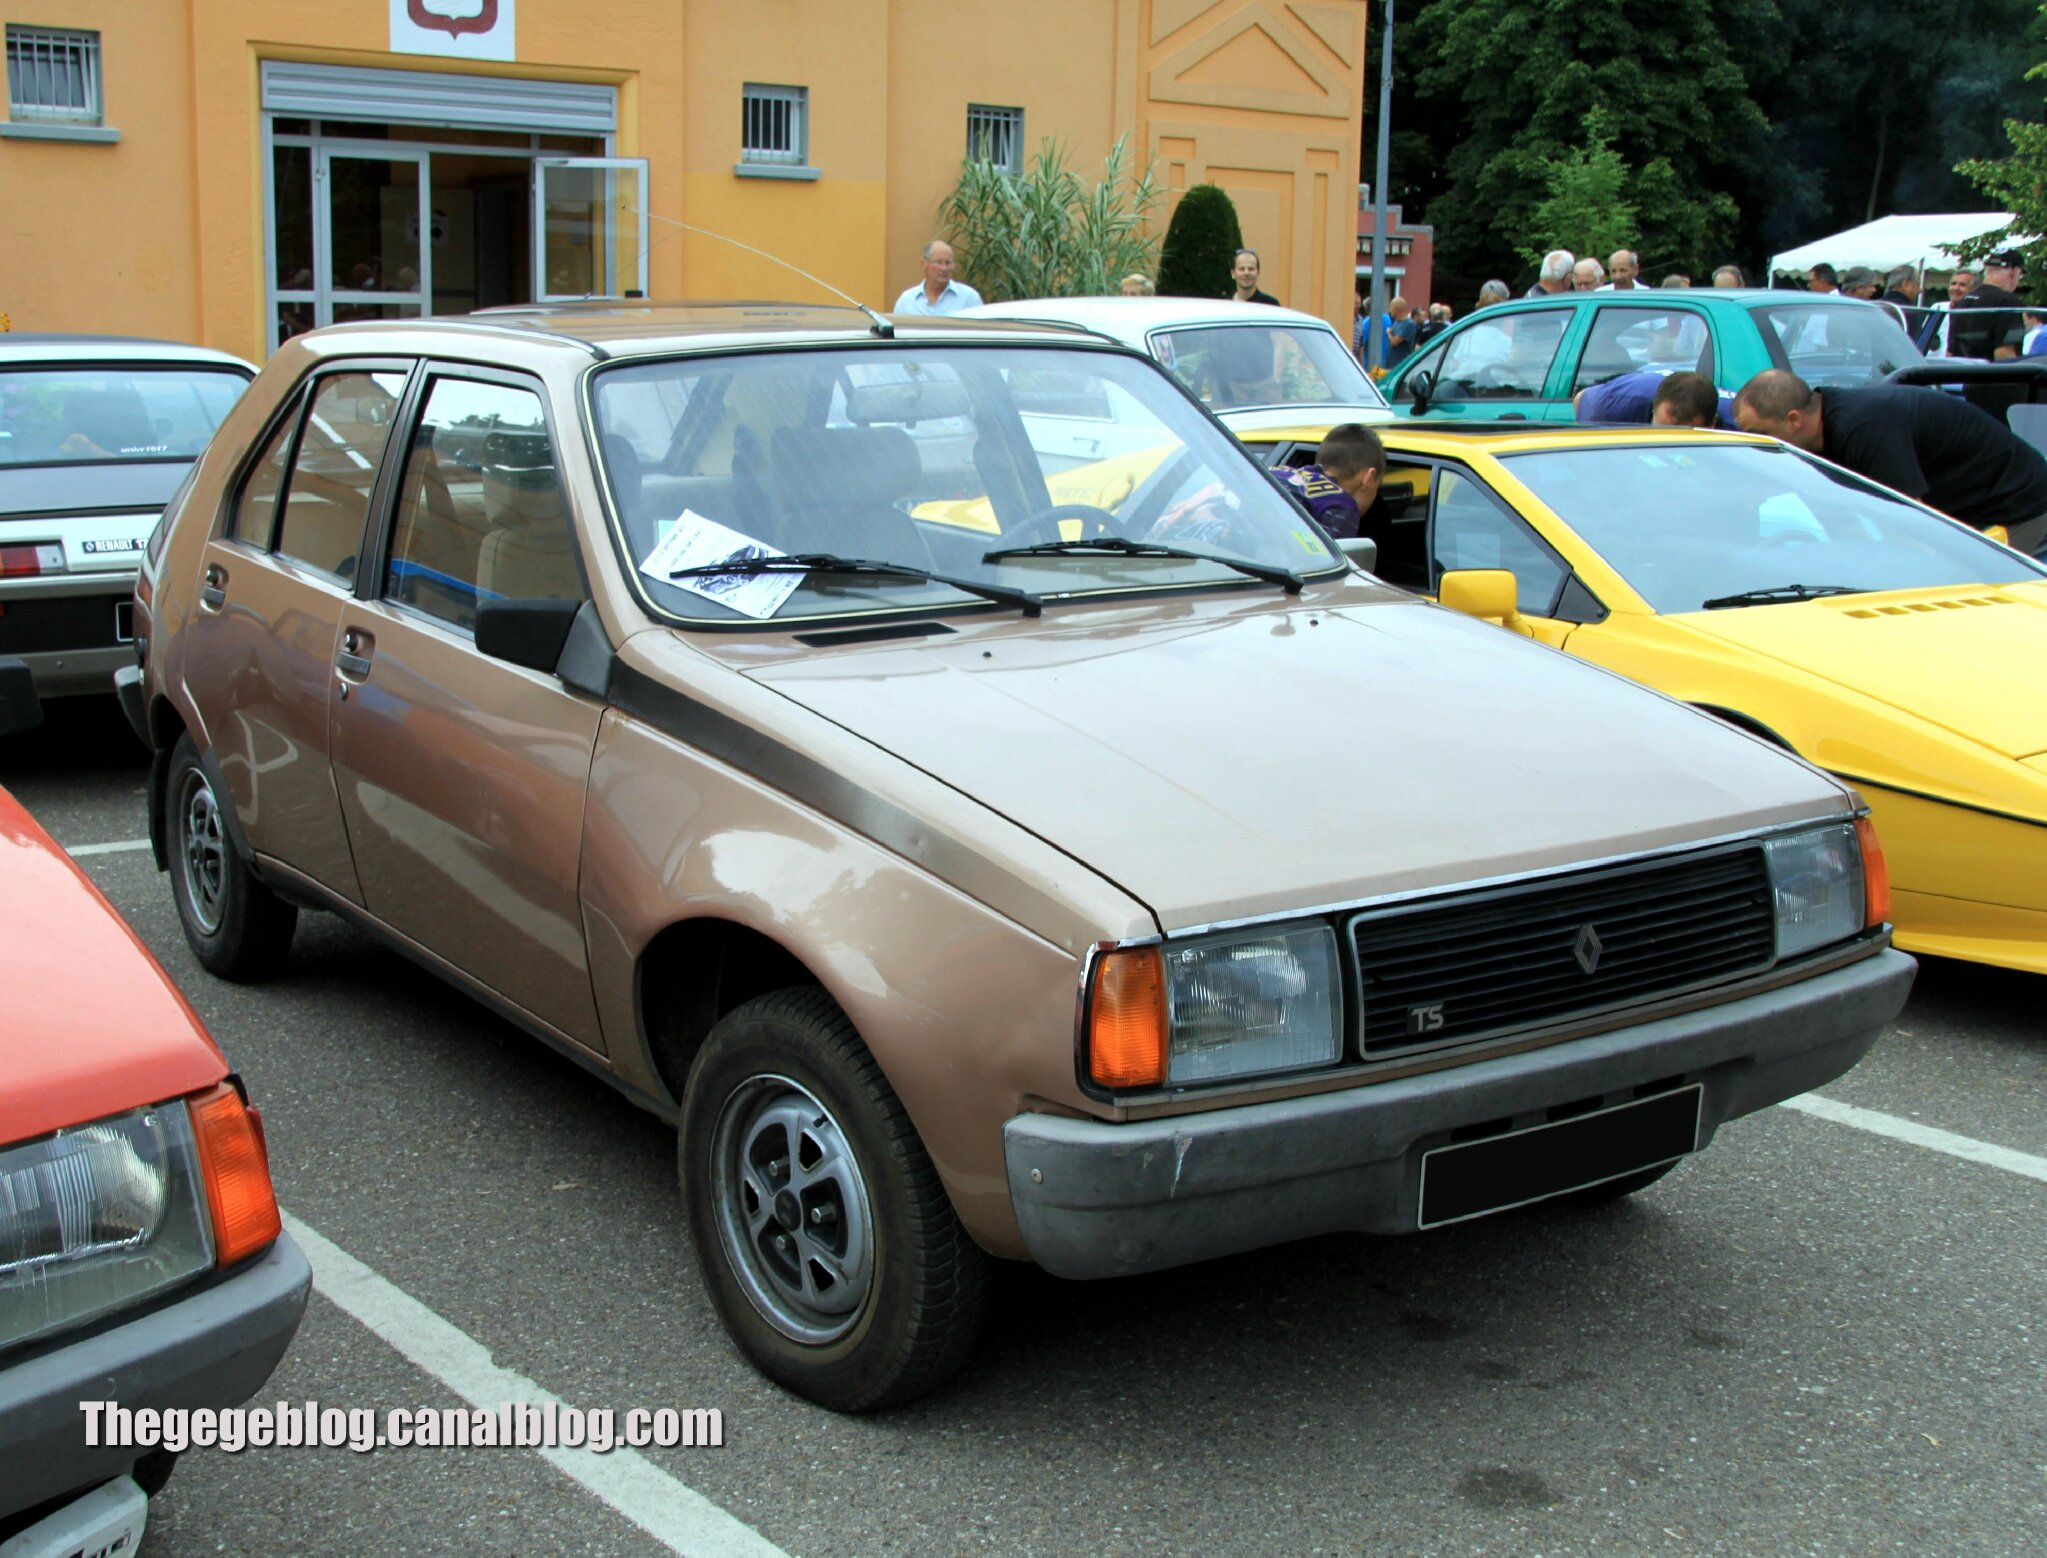 Renault 14 TS phase 2 (1980-1983)(Retrorencard aout 2013) 01